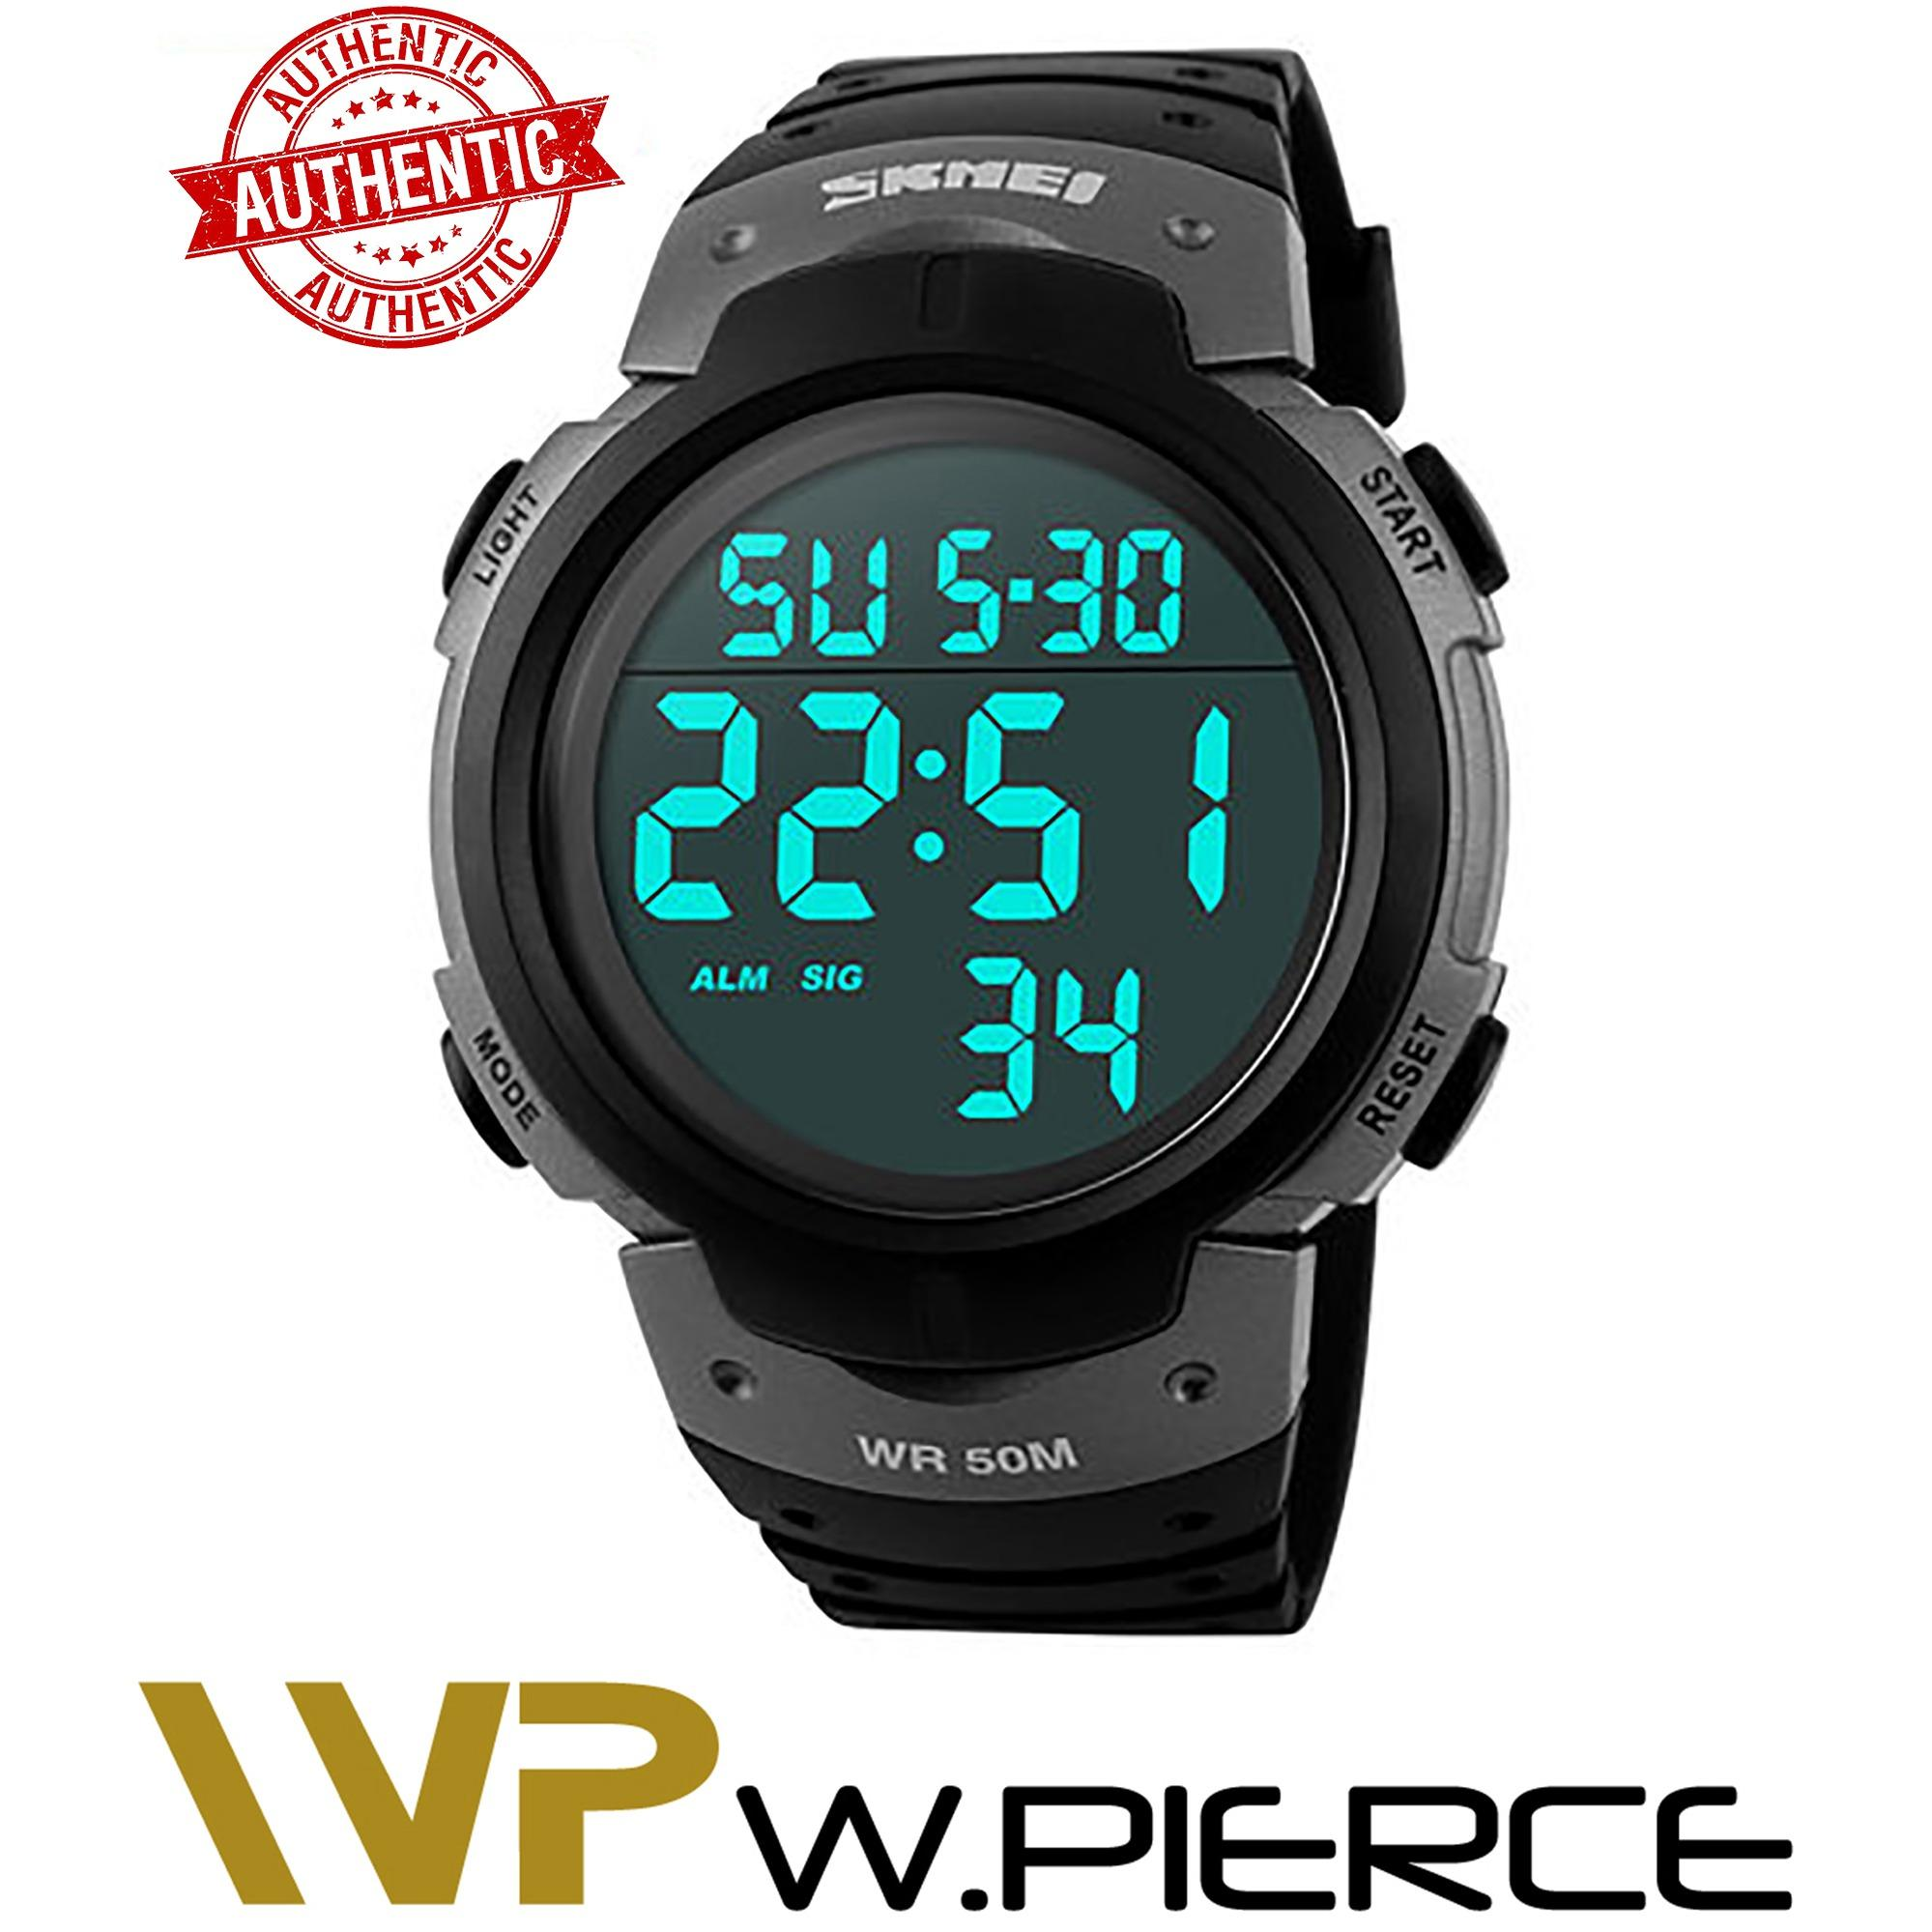 black watches amazon vibration xl alarm com s waterproof shock expedition l watch dp timex men